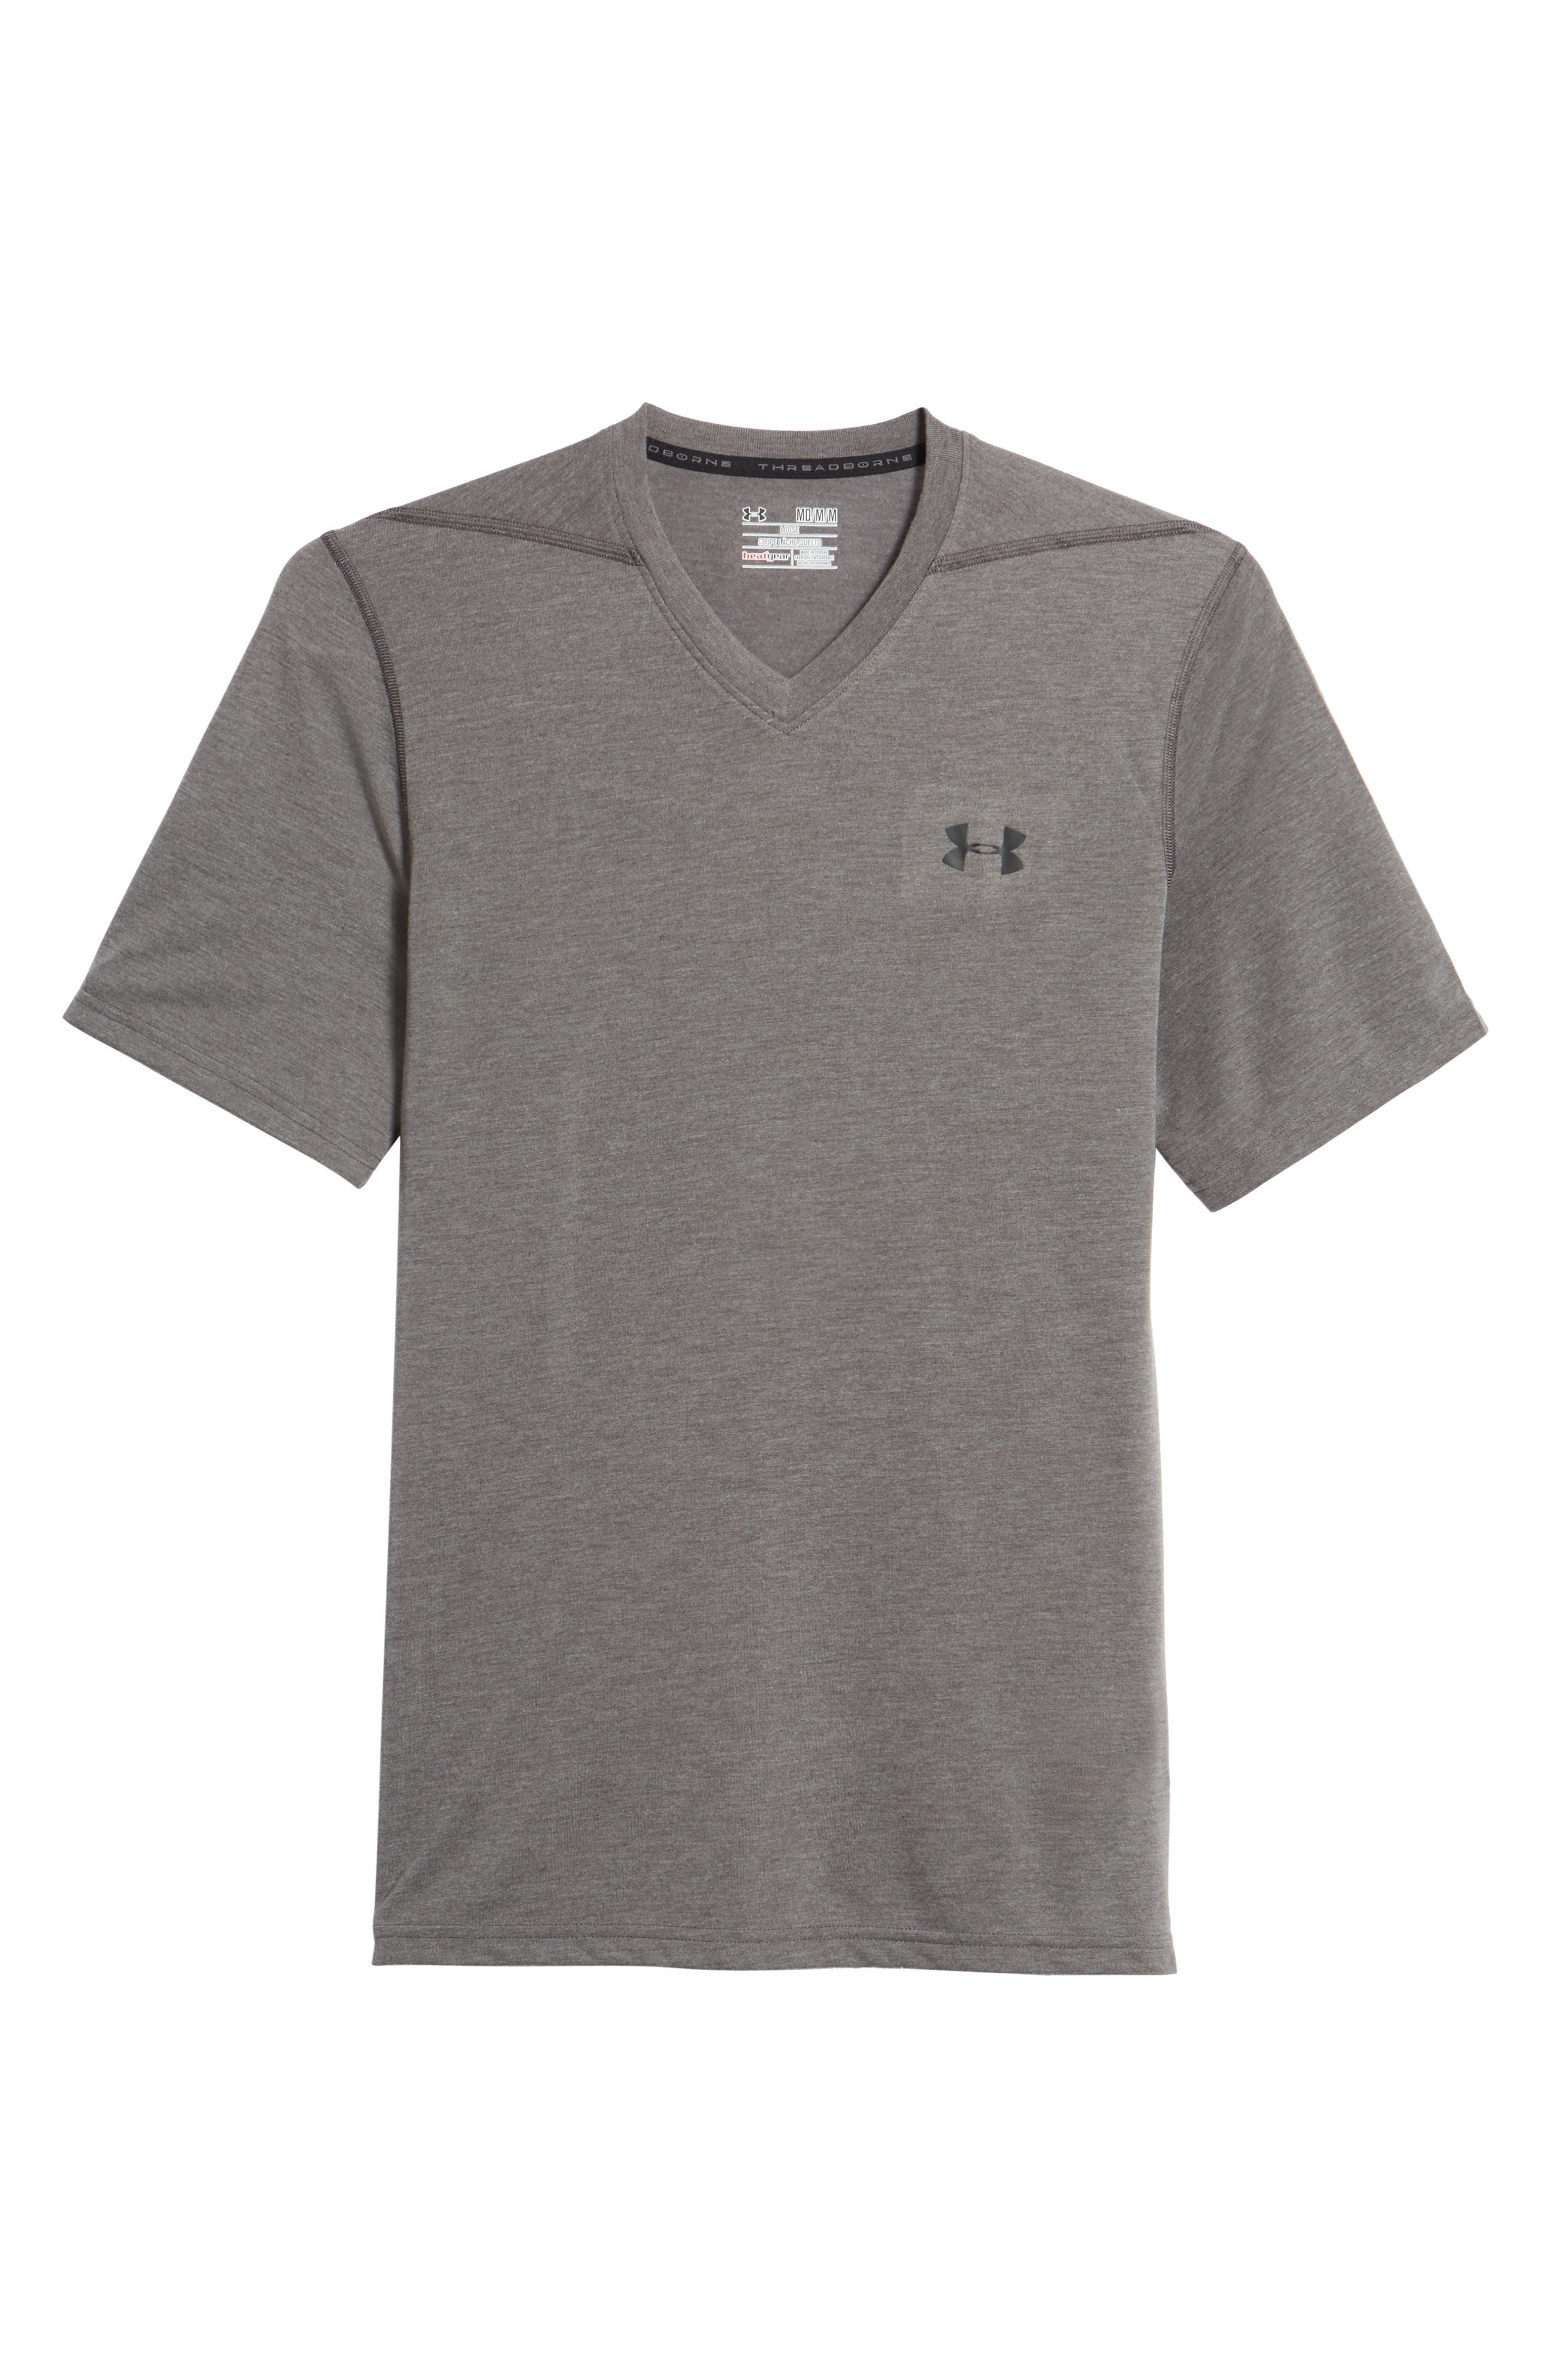 abbf2af54 Cheap under armour men t shirt deepblue Buy Online  OFF62% Discounted